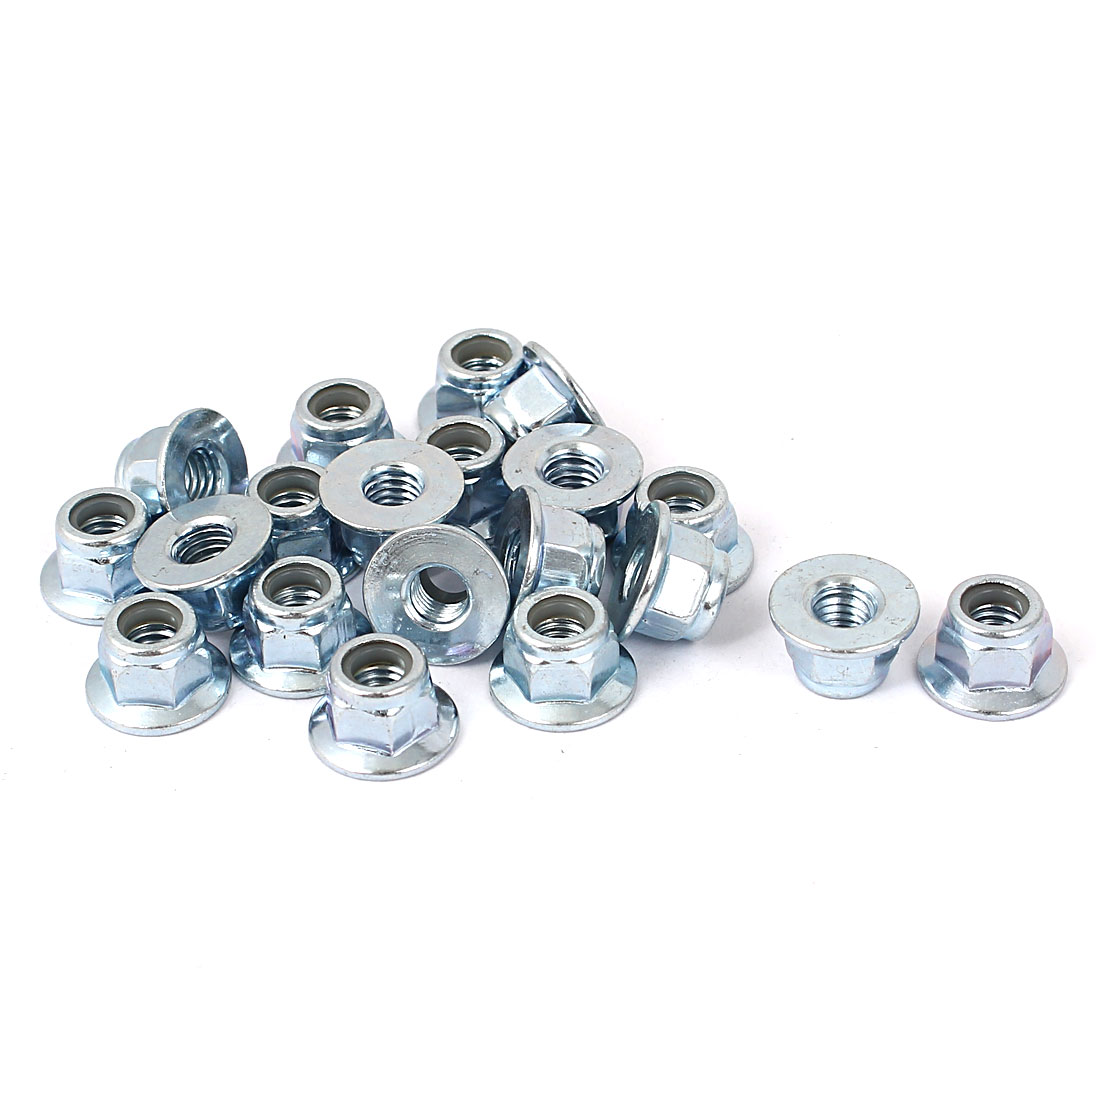 M5 Metric Carbon Steel Hex Flange Stop Lock Nut 20pcs